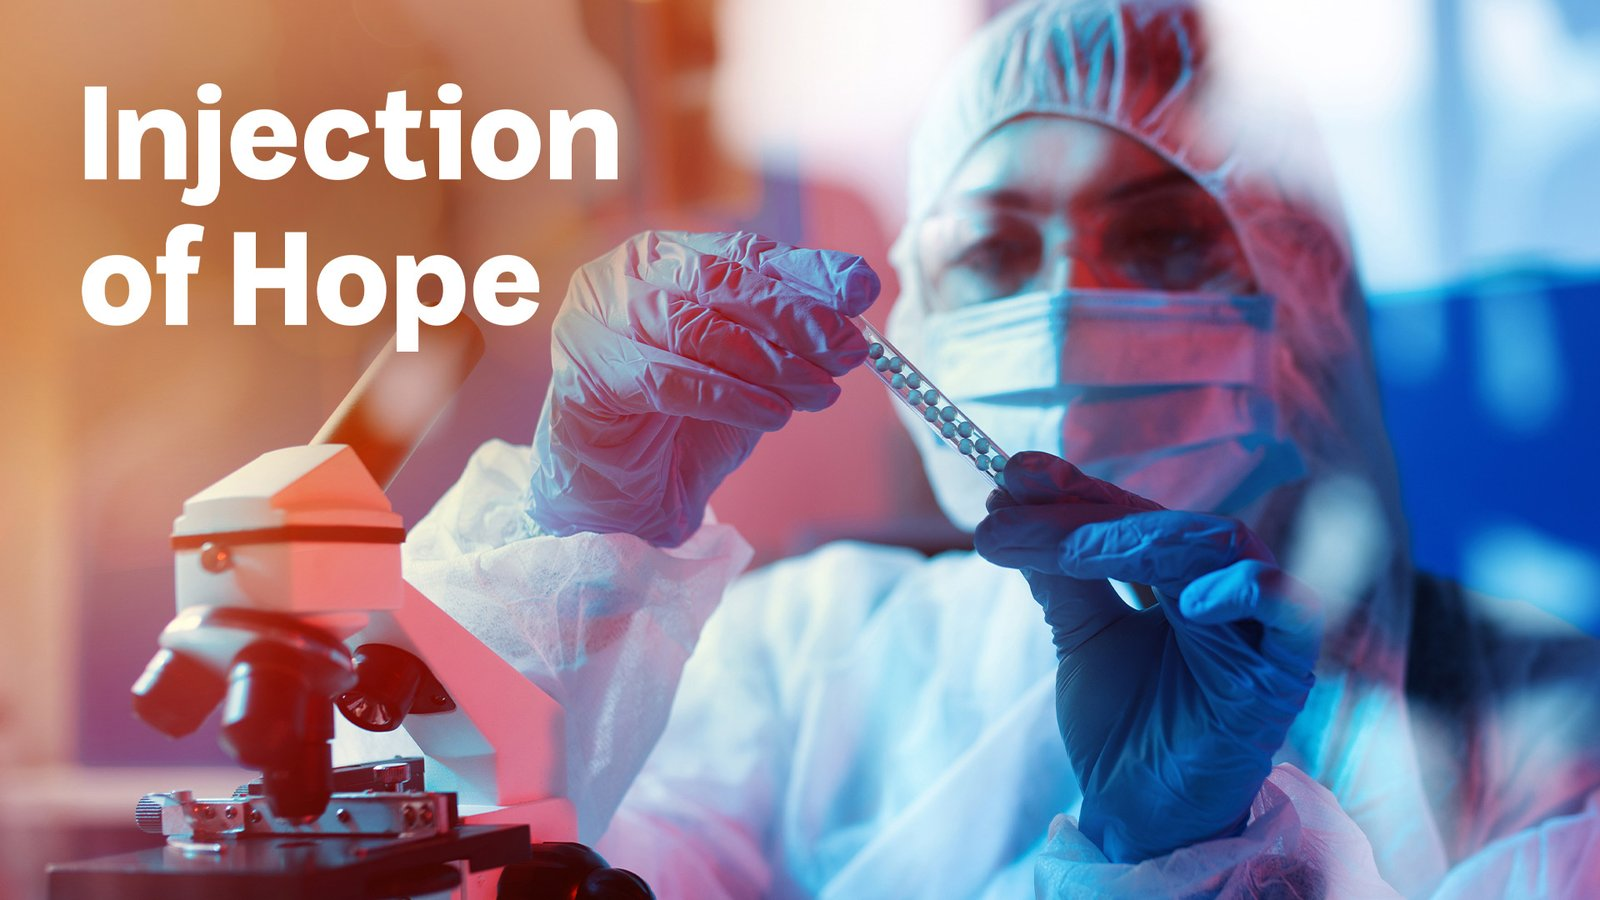 Injection of Hope: The Hunt for a COVID-19 Vaccine